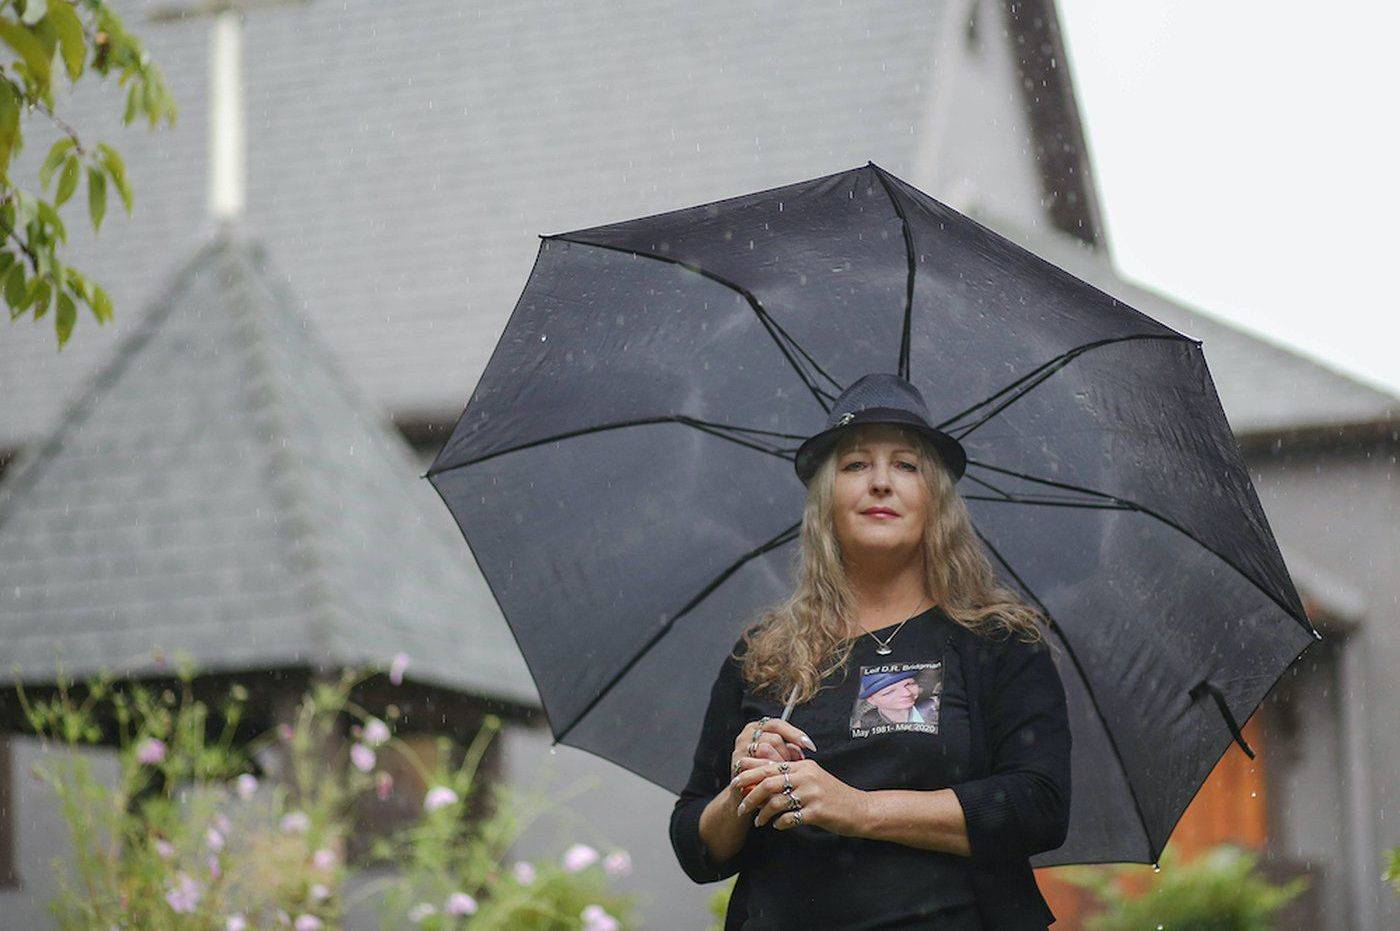 Donna Bridgman, wearing a shirt with son Leif's photo, outside St. Barnabas Church in New Westminster. Leif's ashes are in a burial niche at the church. Photo by Christopher Cheung.